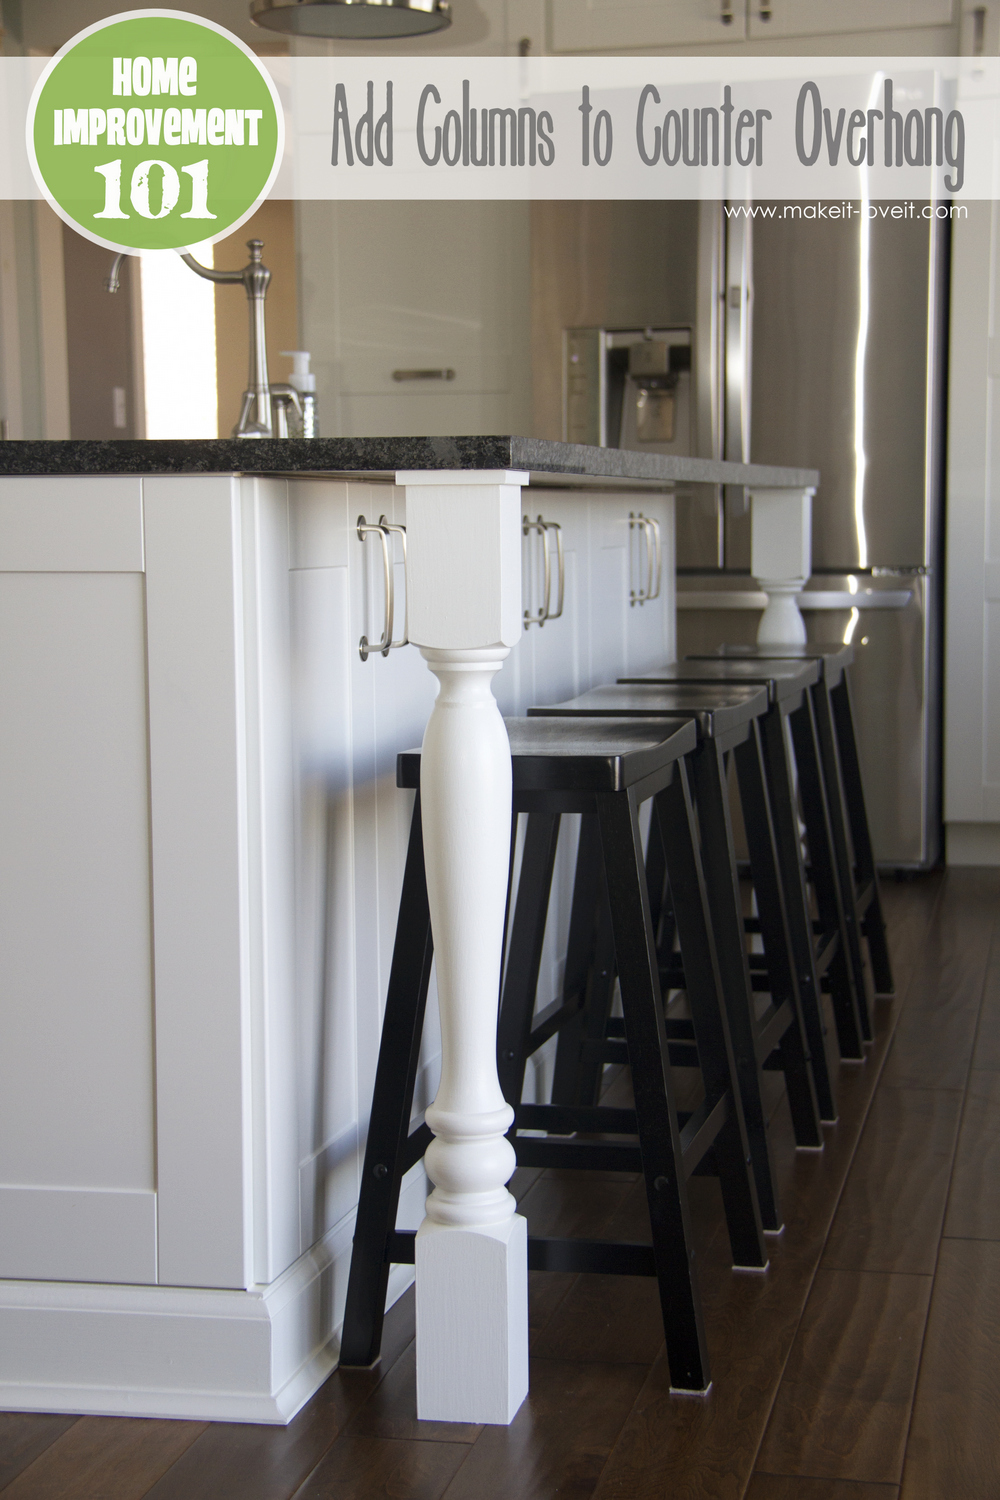 Kitchen Island Granite Overhang home improvement: adding column supports to counter overhang (plus